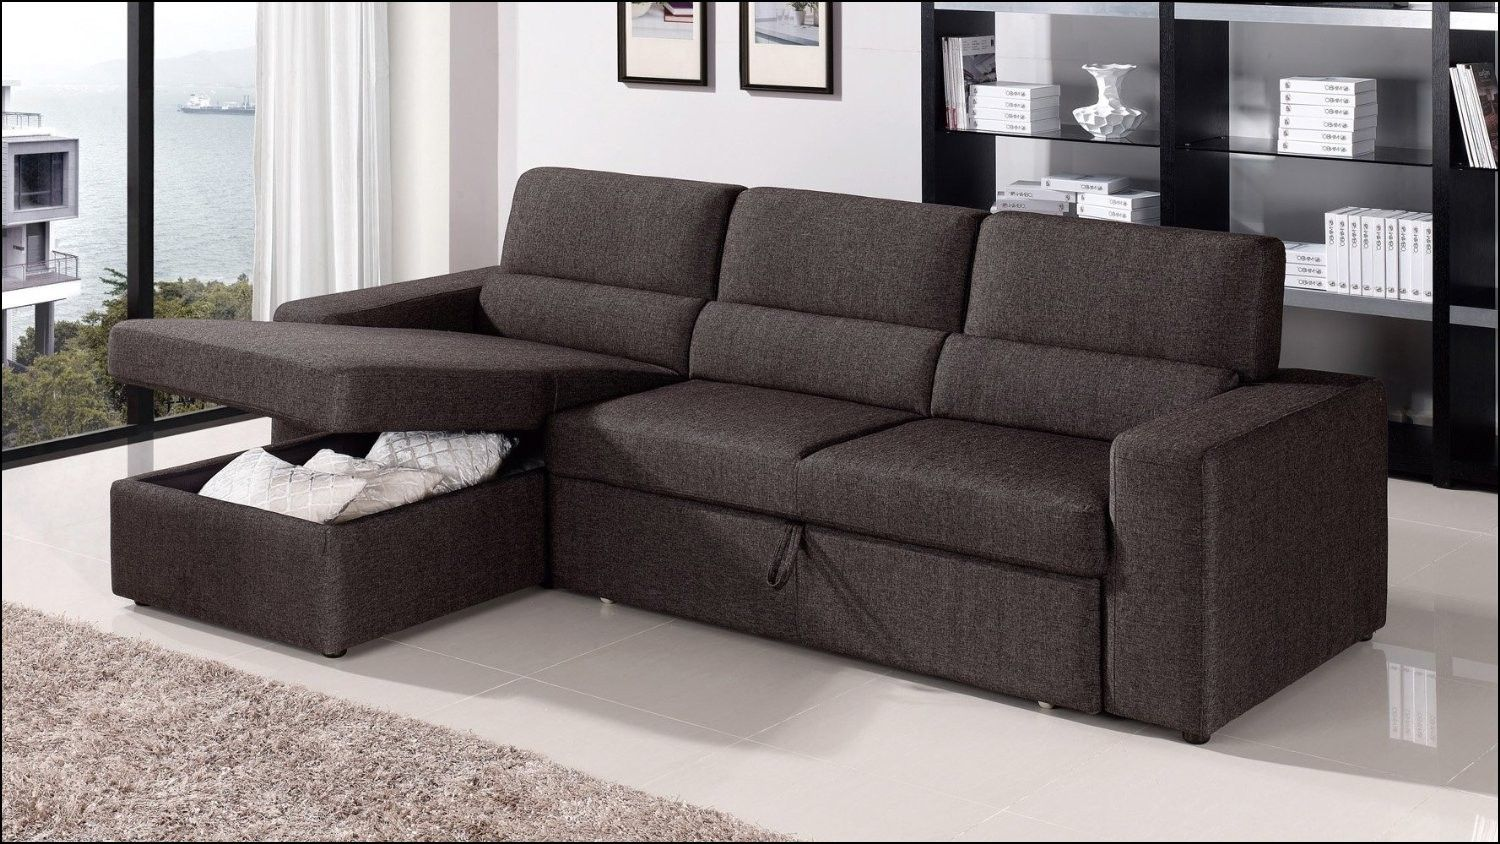 Stupendous Beeson Sleeper Sofa Inventions Sectional Sleeper Sofa Ncnpc Chair Design For Home Ncnpcorg